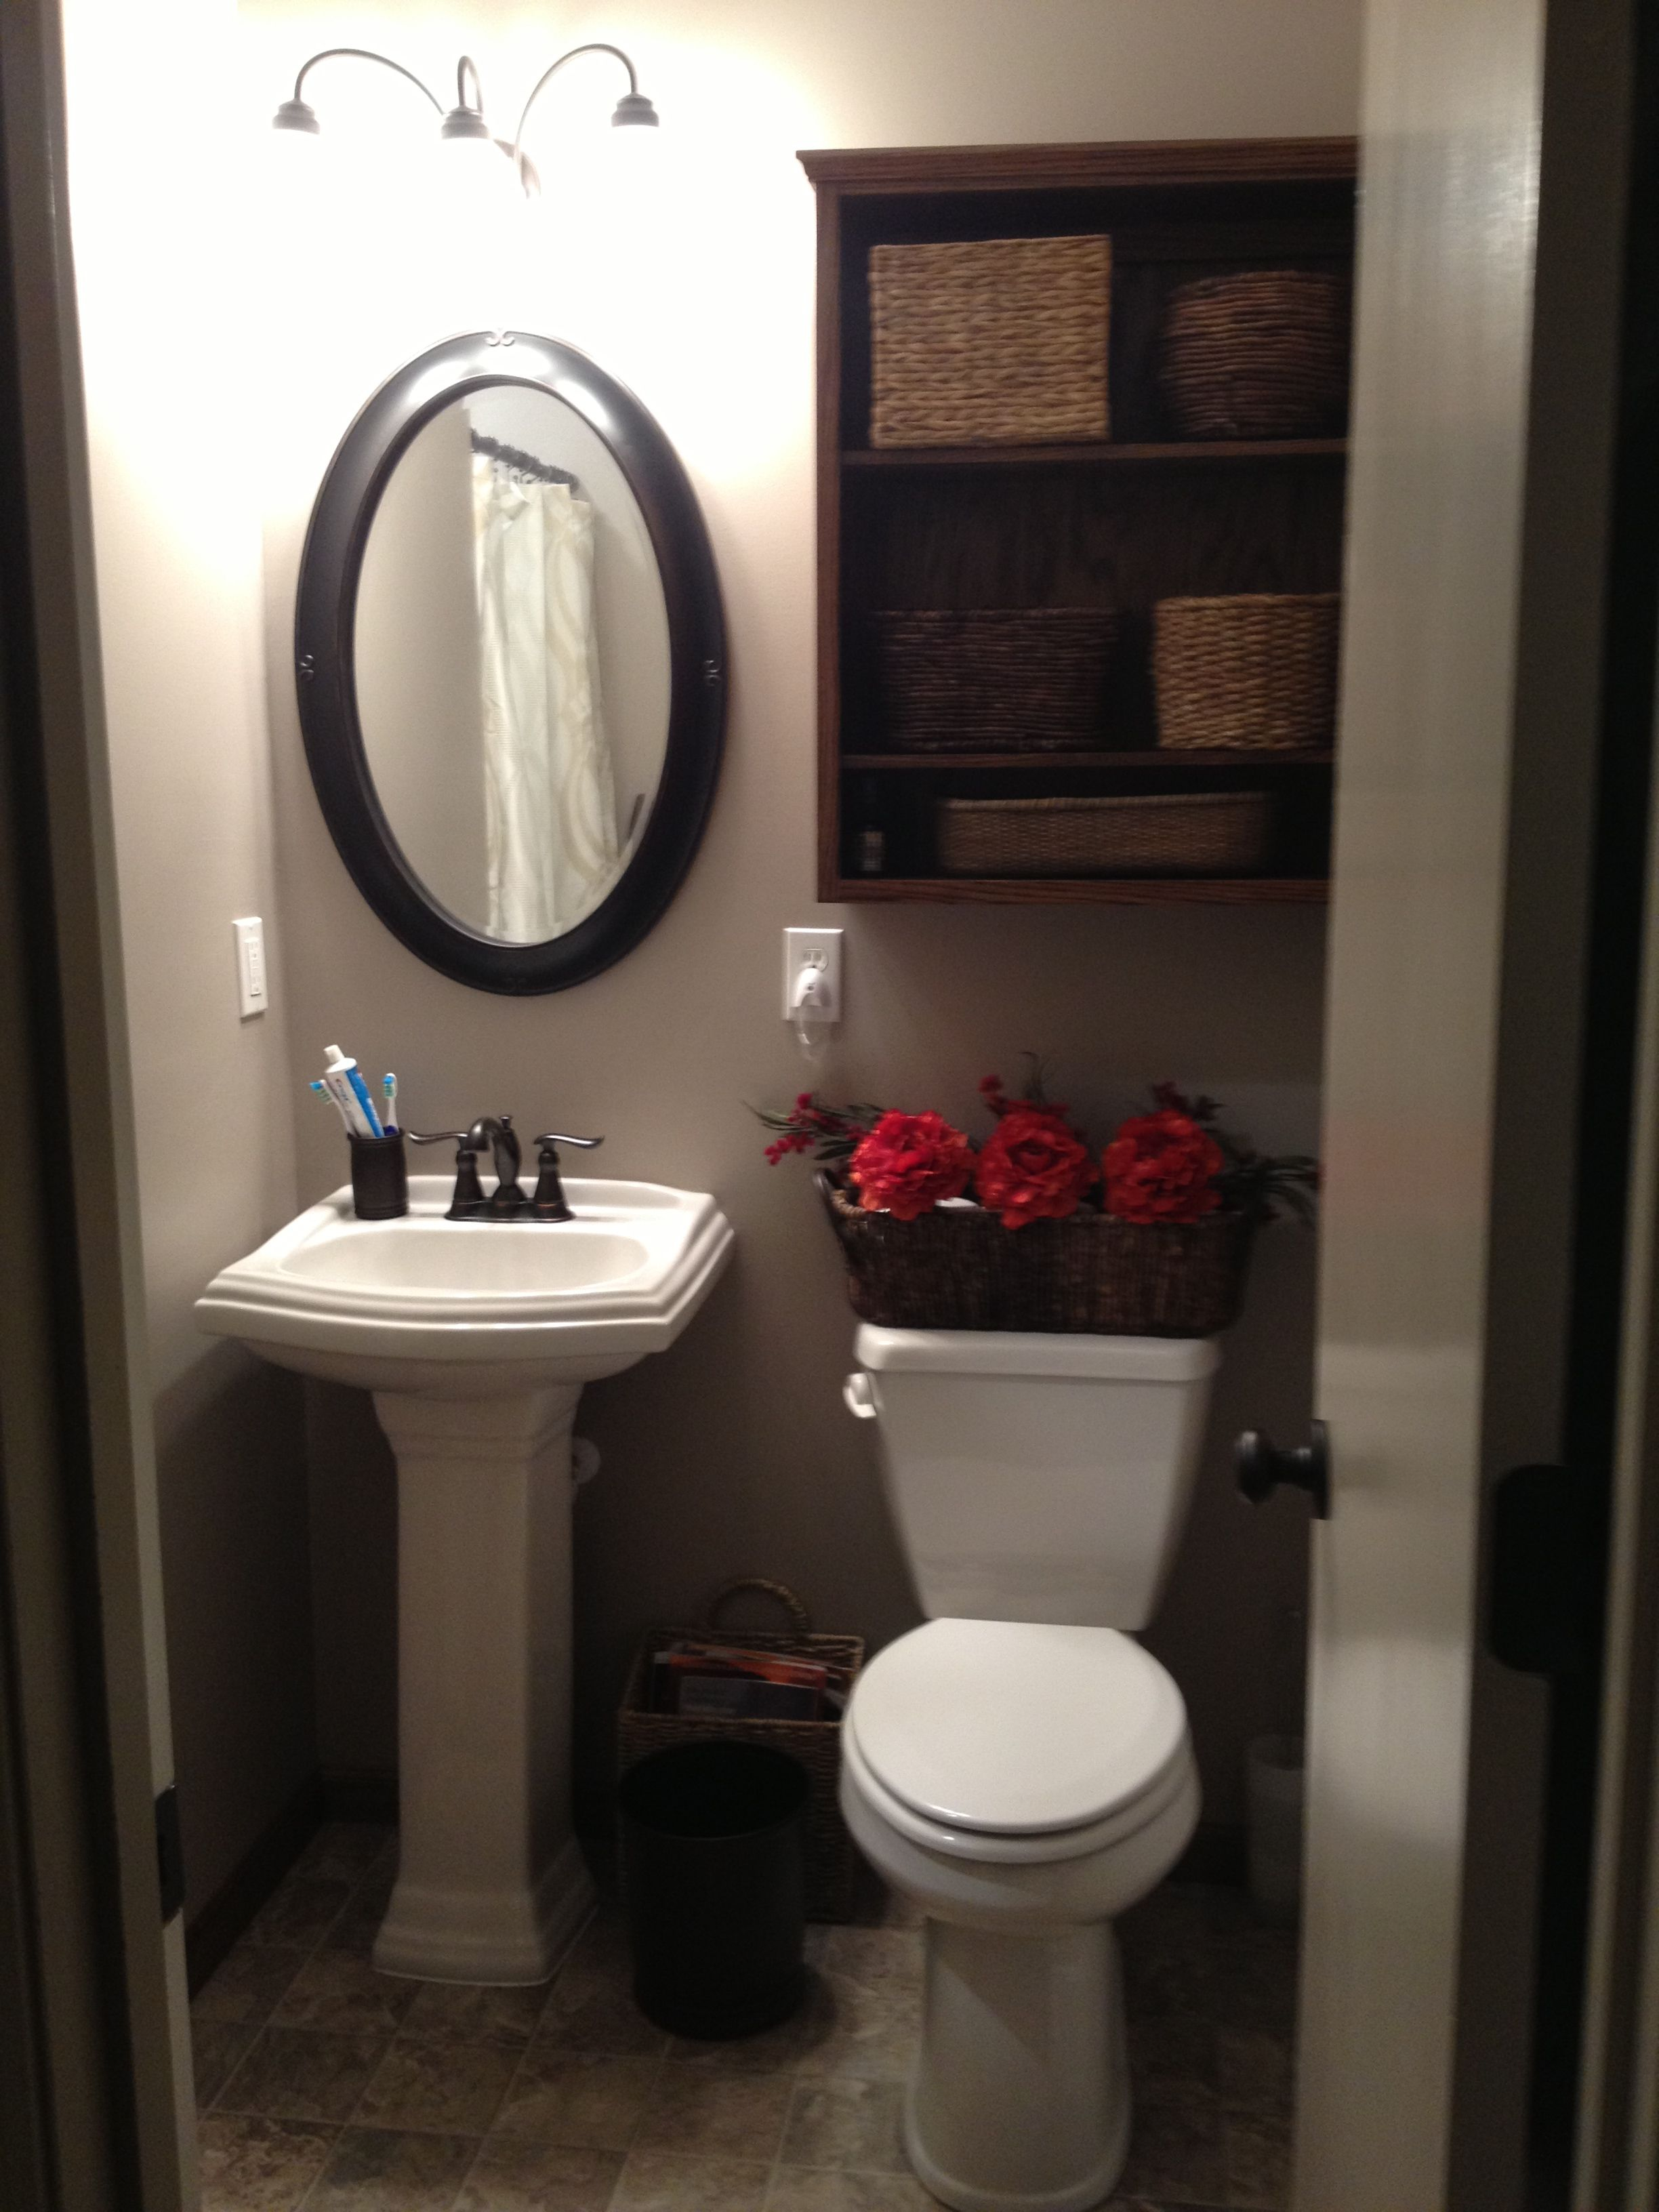 reviews bathroom overflow with wayfair improvement tresham pedestal sink pdx k sinks kohler ceramic home